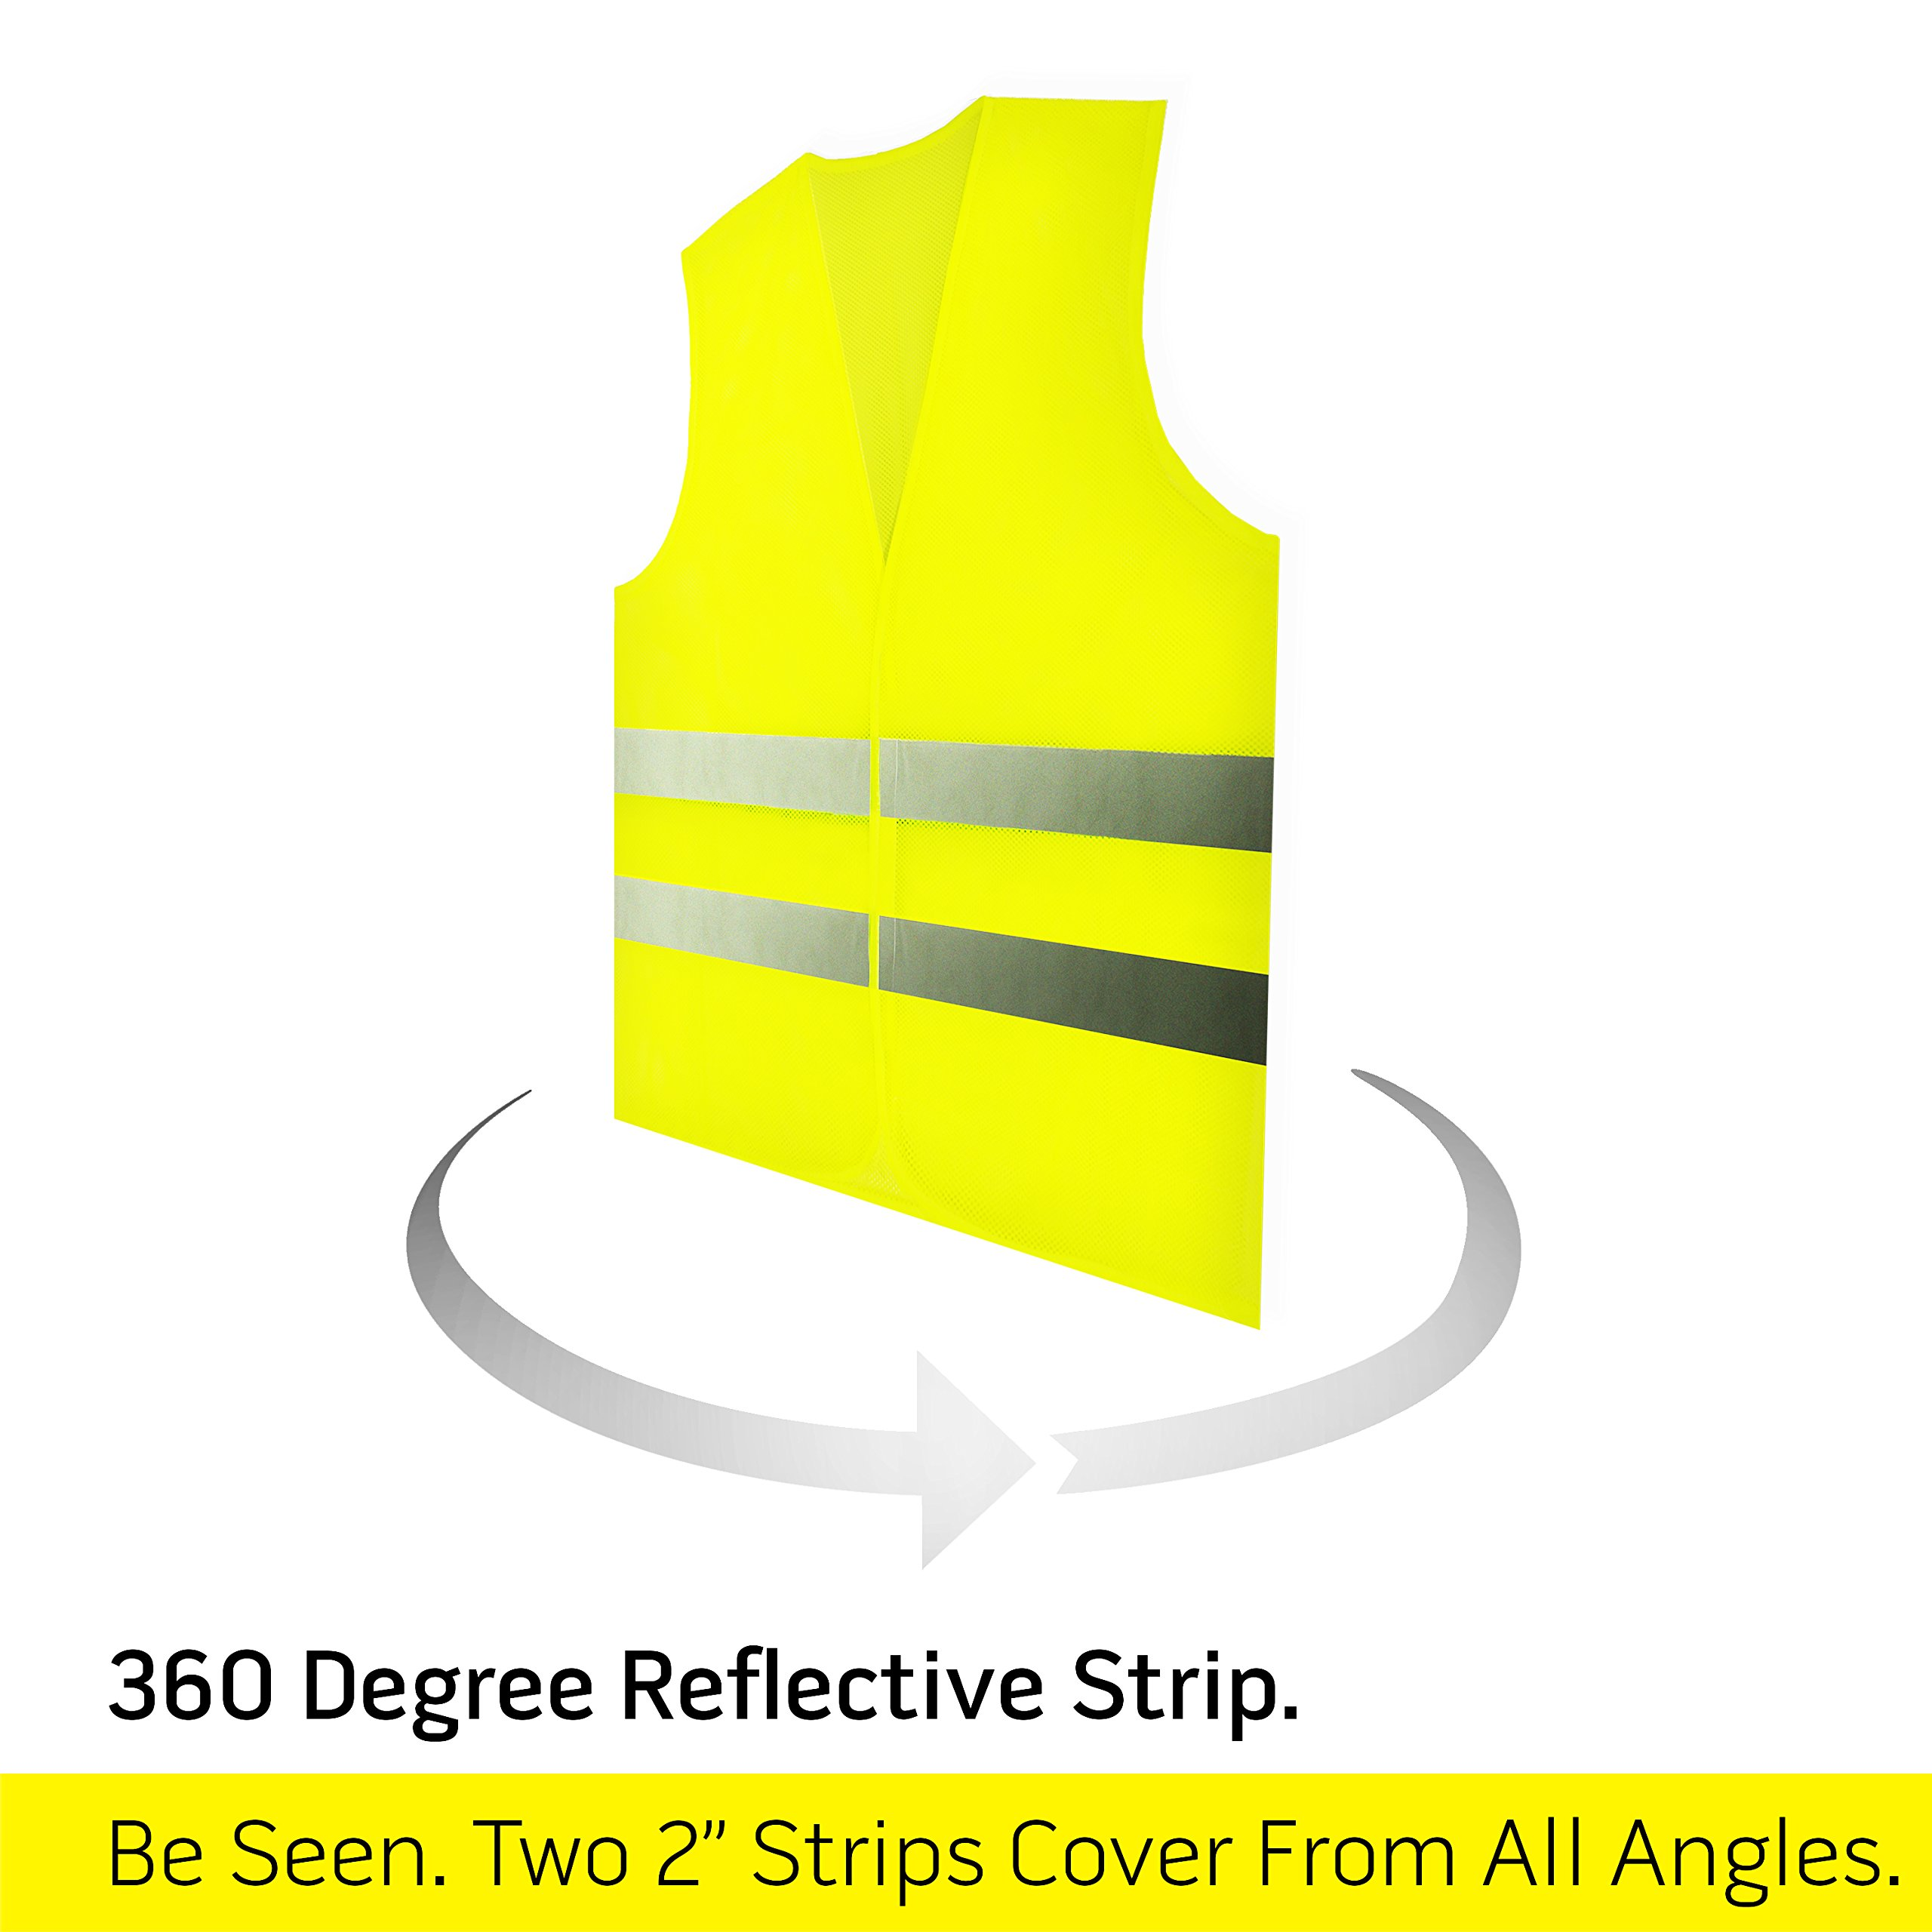 PeerBasics, 10 Pack, Yellow Reflective Safety Vest, Silver Strip, Bright Breathable Neon Yellow (Mesh, 10) by PeerBasics (Image #3)